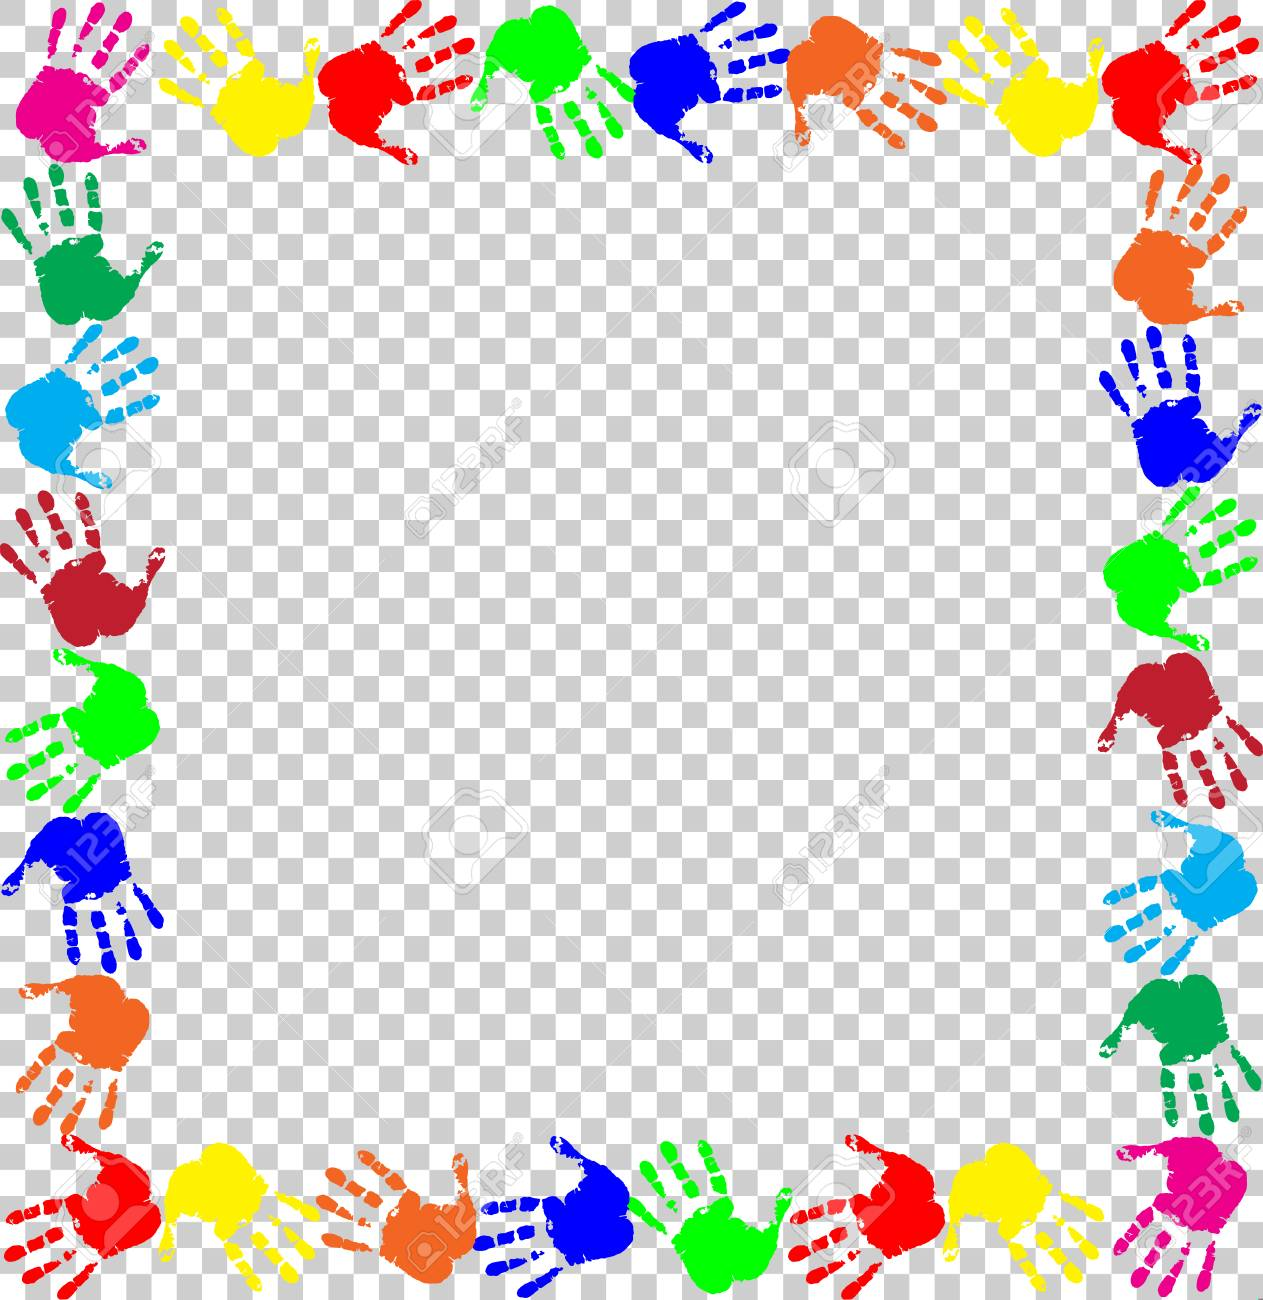 Bright rainbow frame with empty copy space for text or image and multicolored handprints border isolated on transparent background. Vector festive template, photo frame, mockup for invitation design. - 95183932